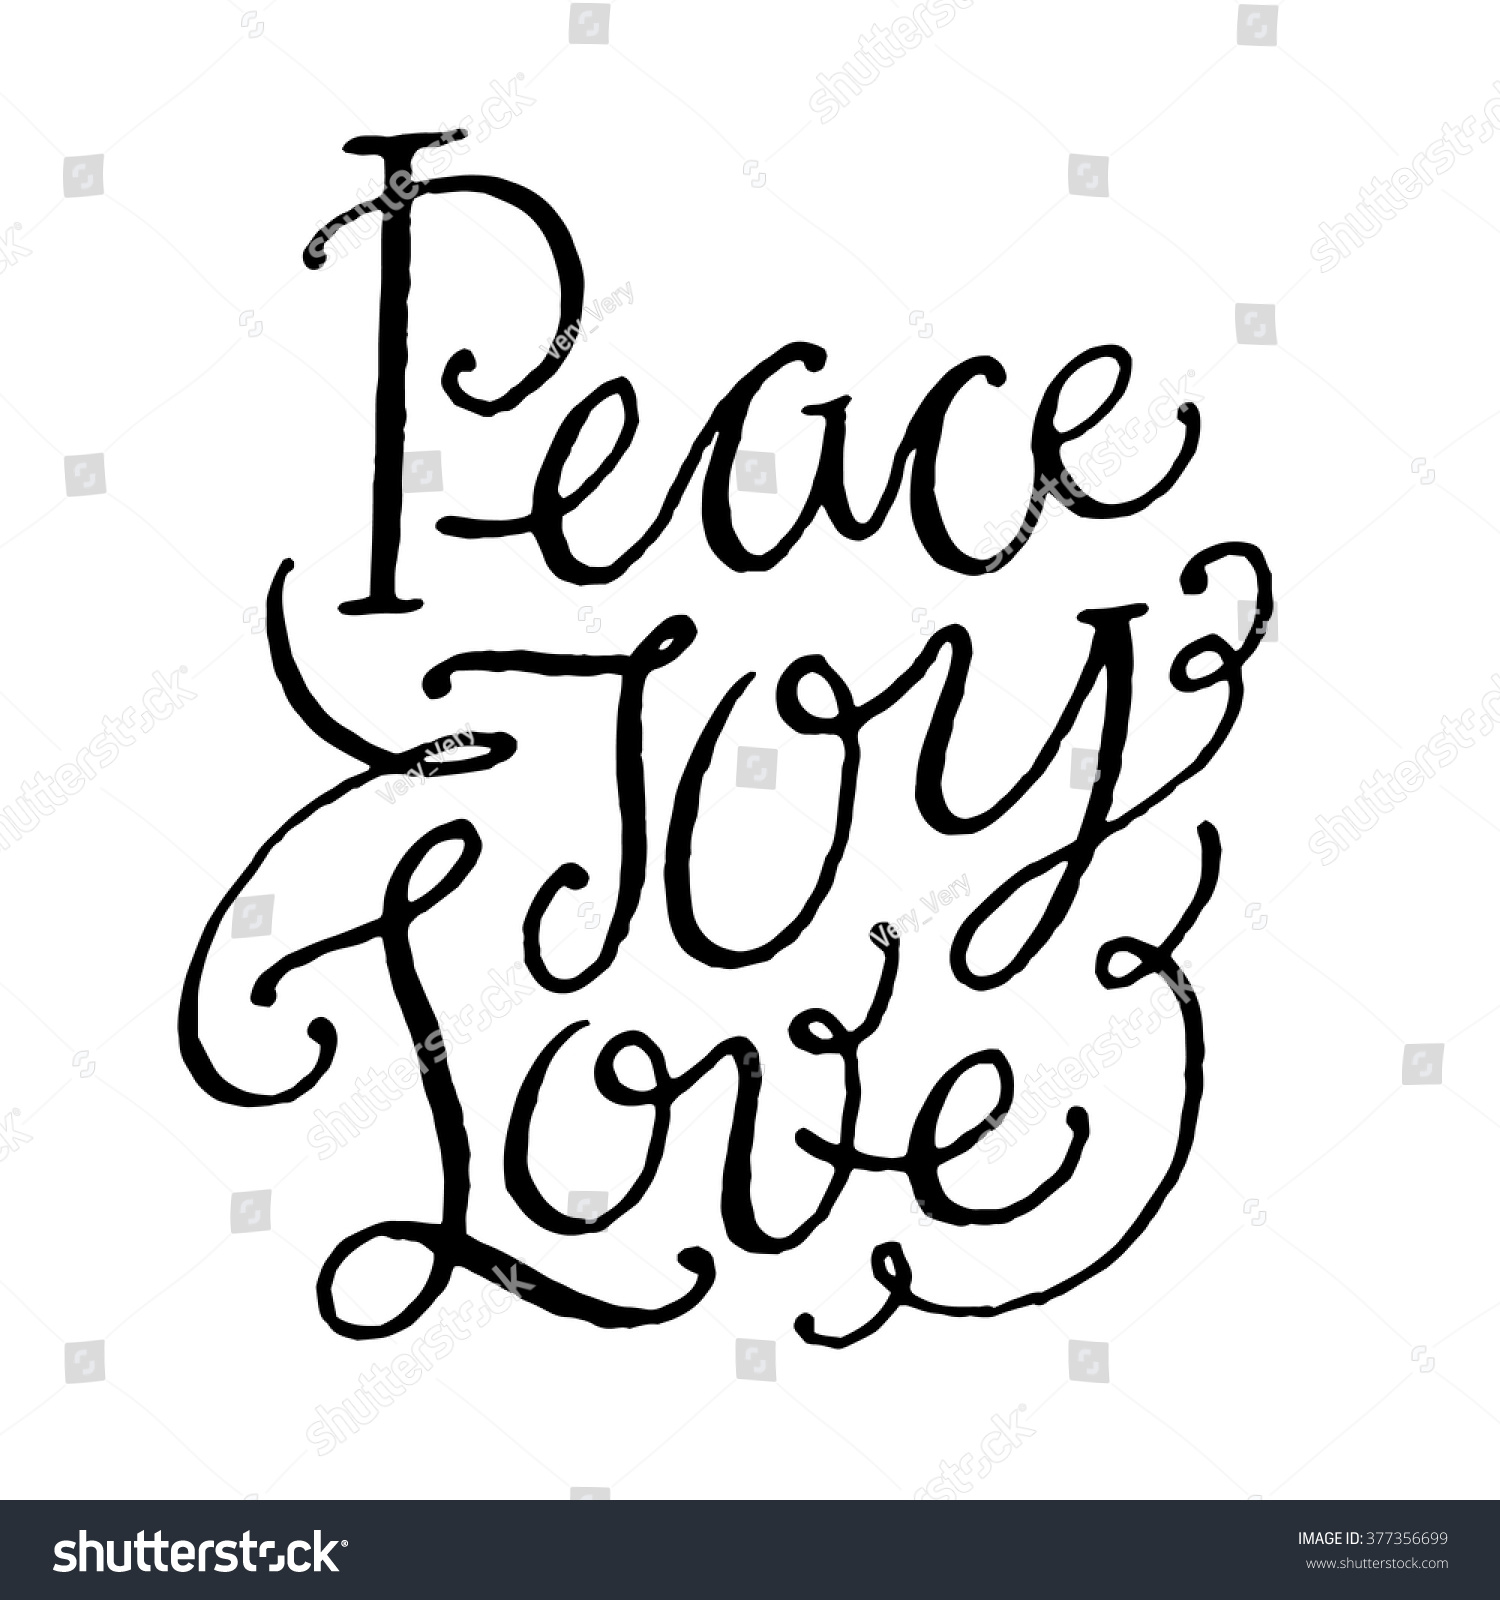 Peace And Joy Quotes: Peace Joy Love Inspirational Motivational Quotes Hand